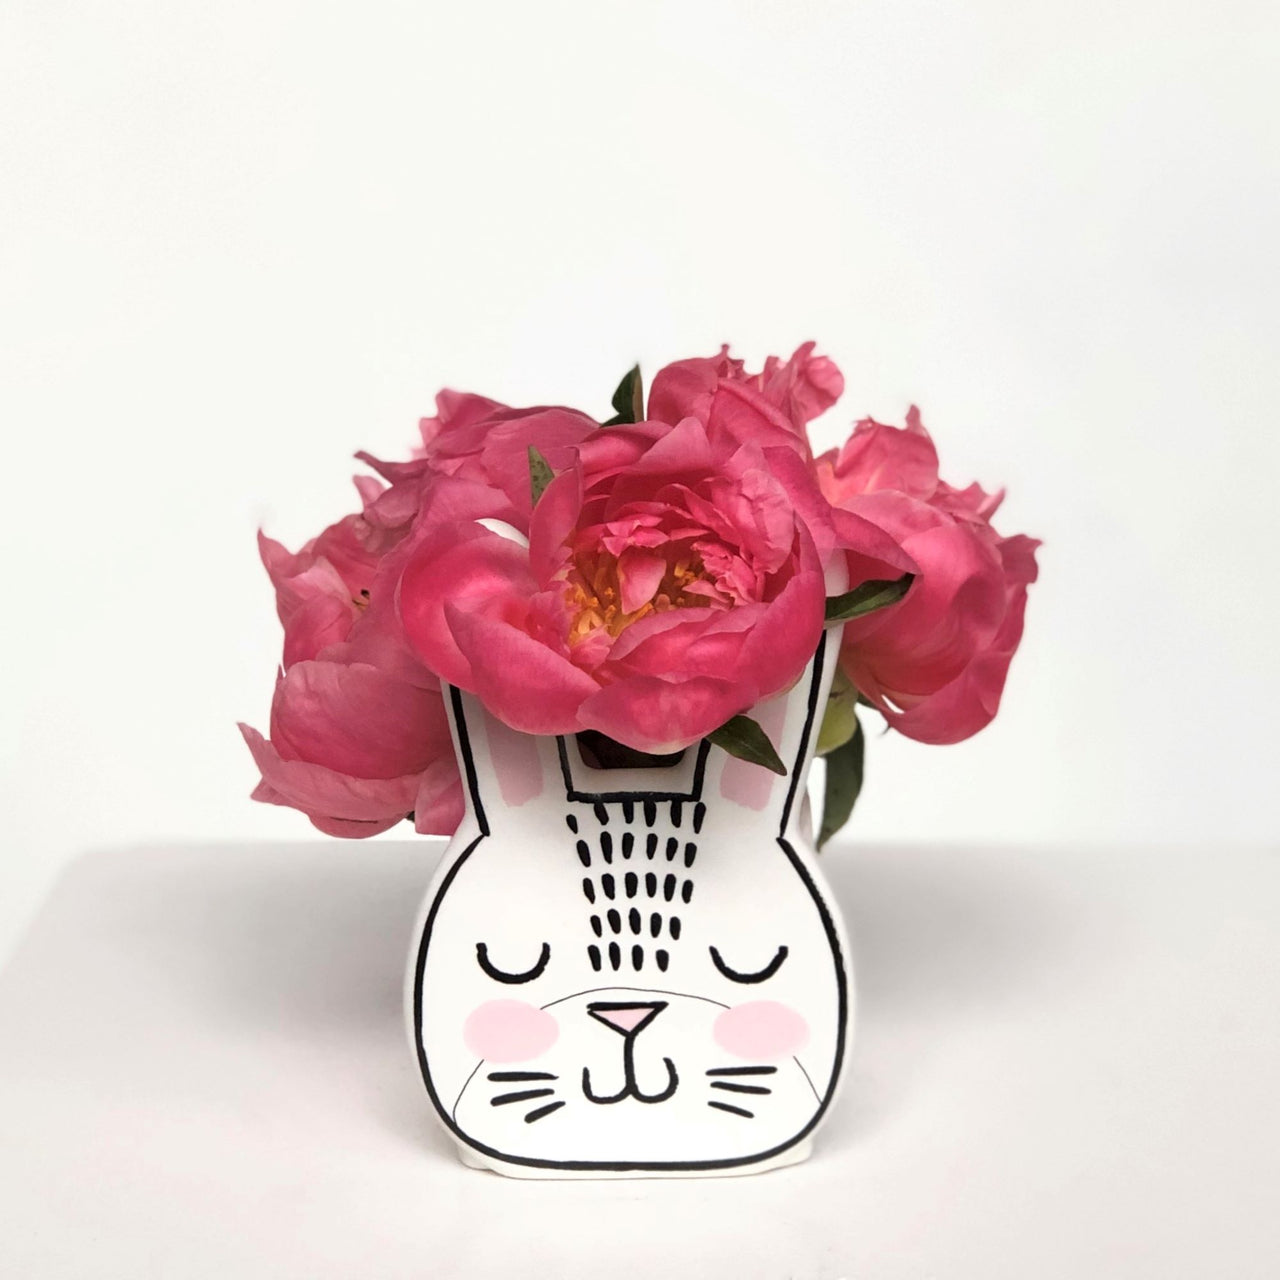 Stacy K Floral Blushing bunny floral arrangement Eye-catching bunny vase full of fresh peonies.